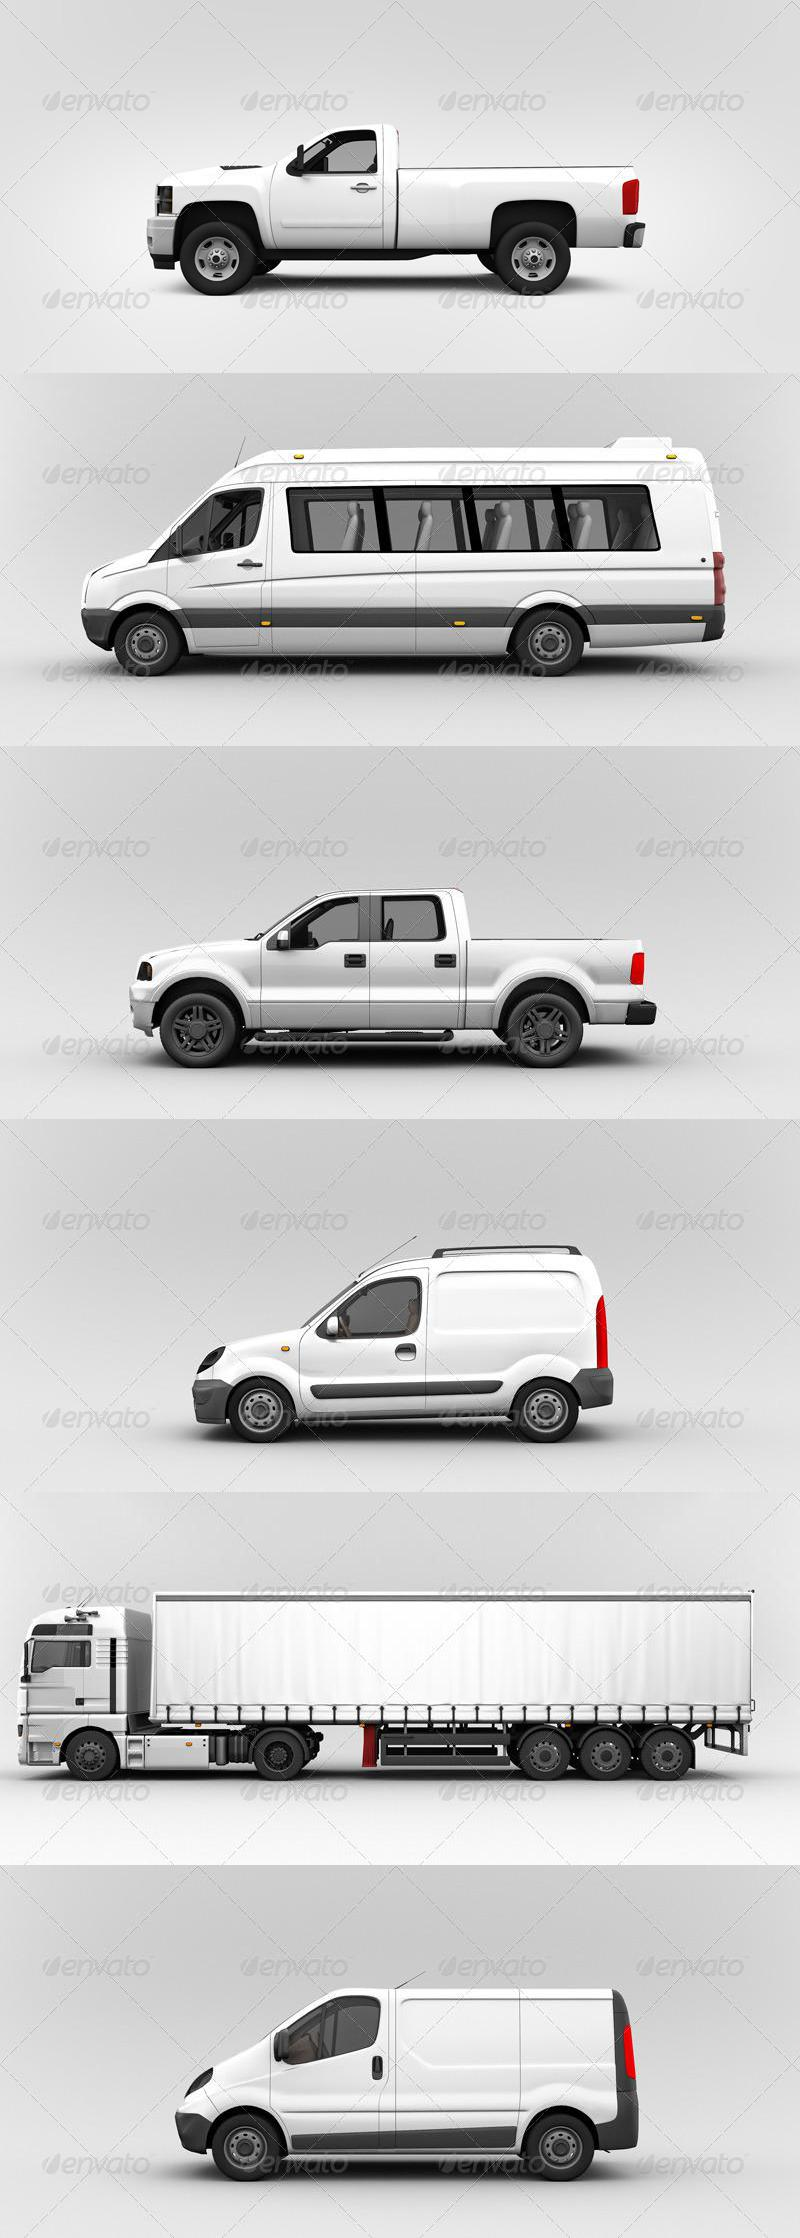 Van & Delivery Cars Branding Mockup Vol. 2